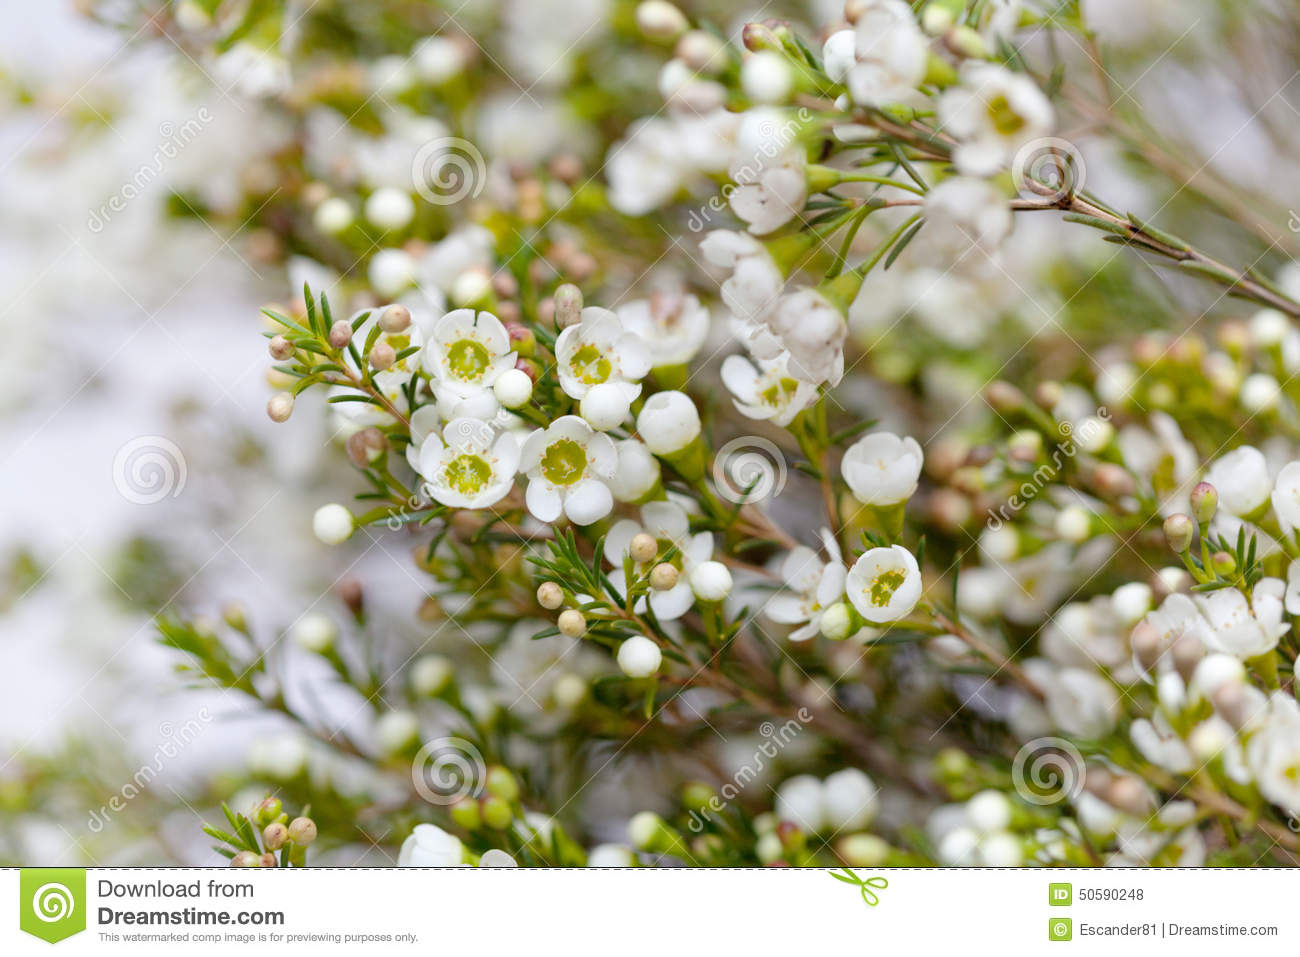 White Wax Flower Detail Stock Images Download 399 Royalty Free Photos